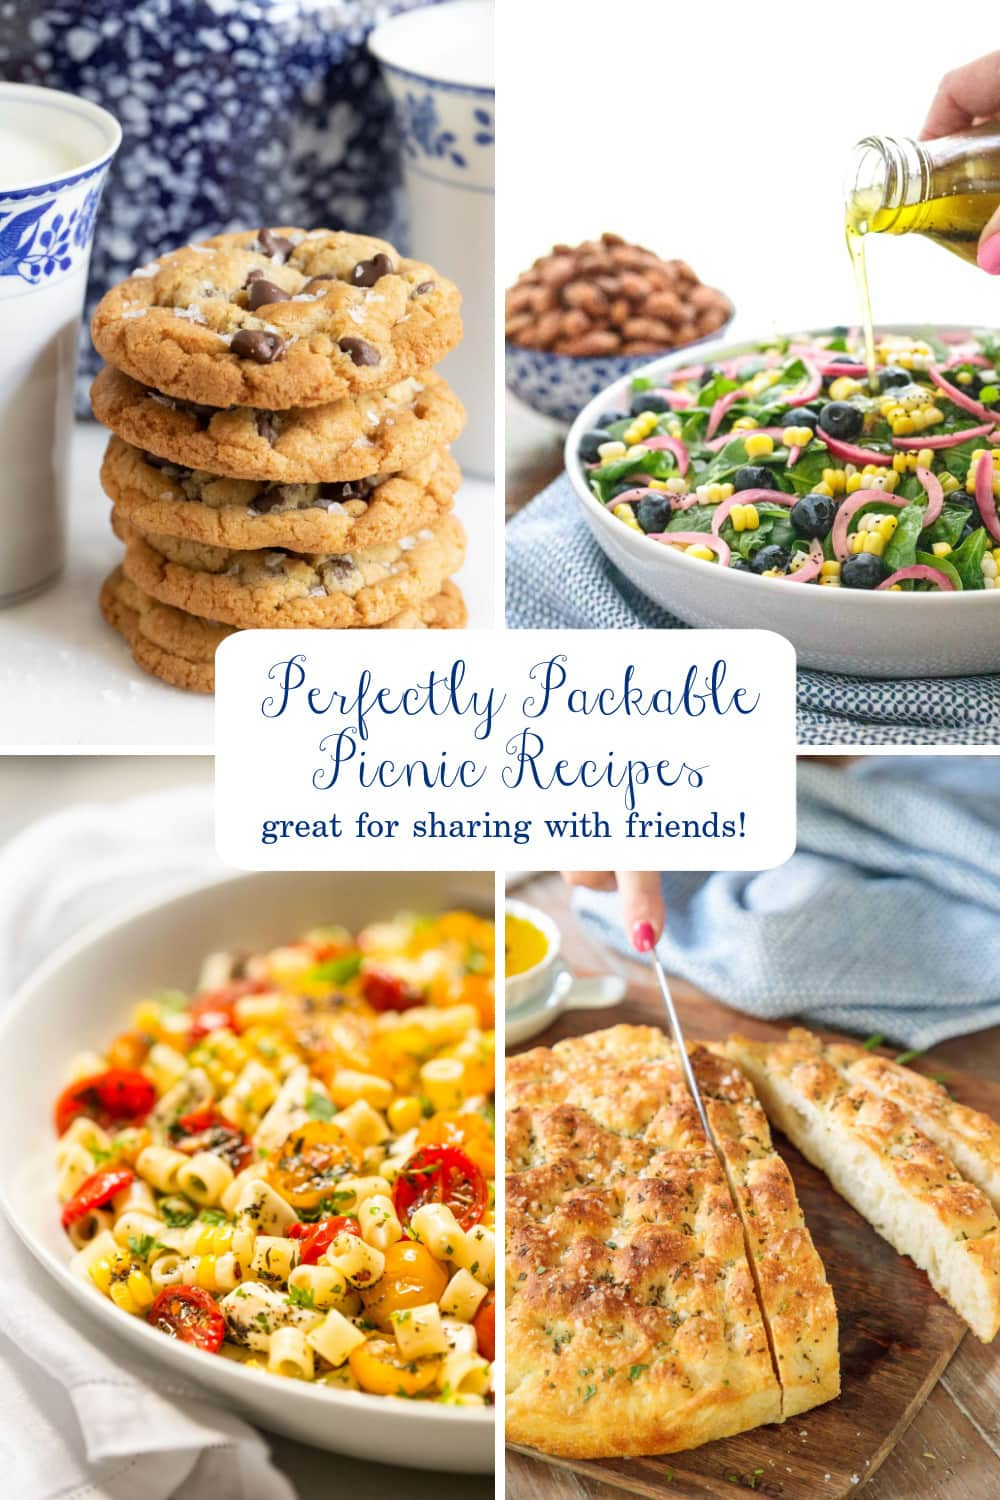 Perfectly Packable Picnic Recipes